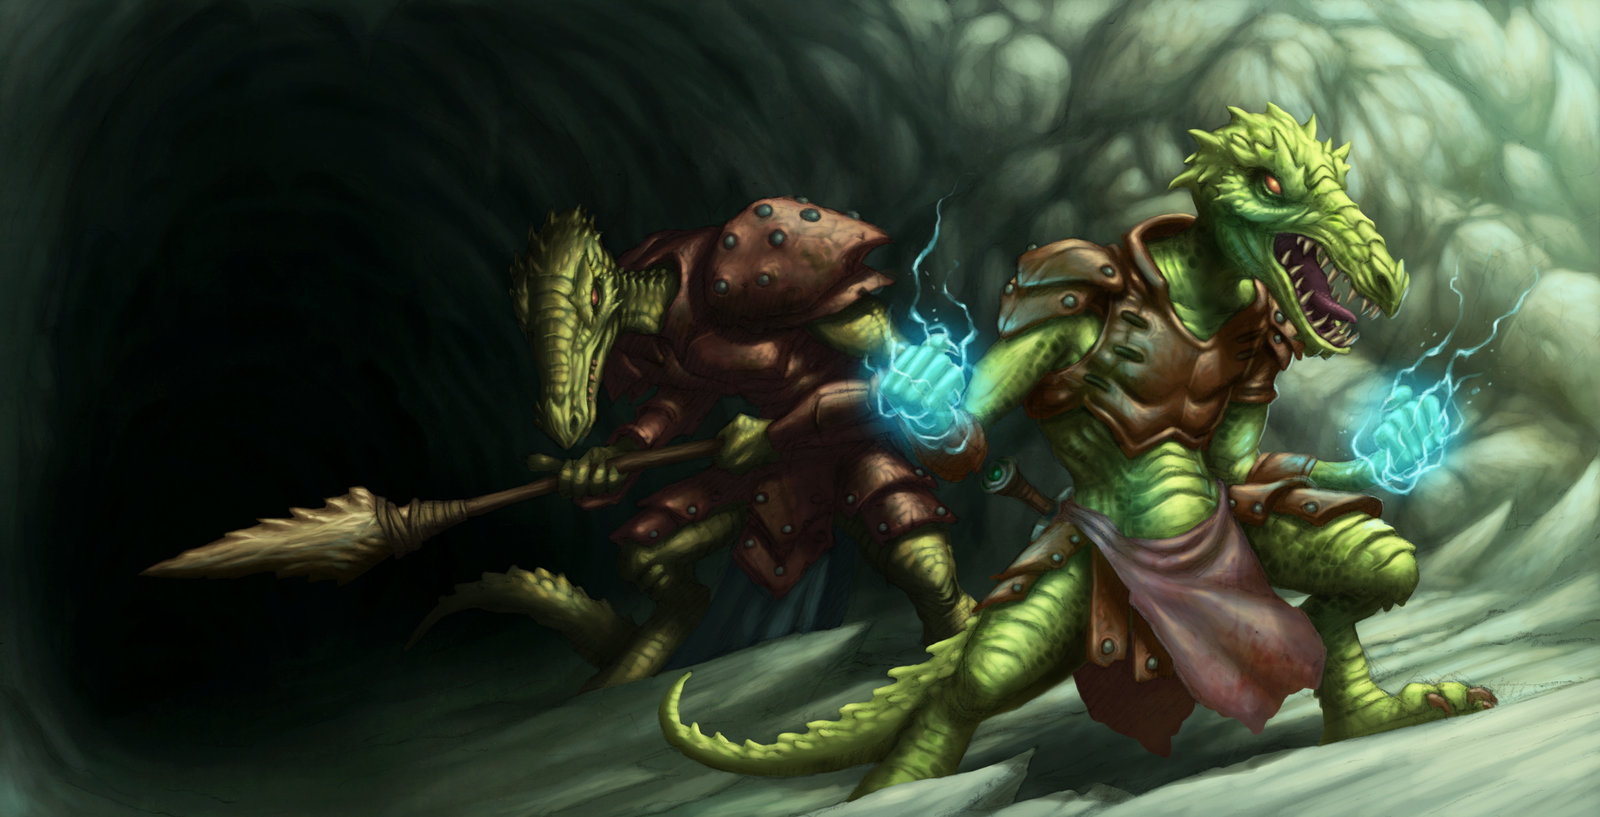 C__Data_Users_DefApps_AppData_INTERNETEXPLORER_Temp_Saved_Images_wyrmguard_kobolds_by_daveallsop.jpg